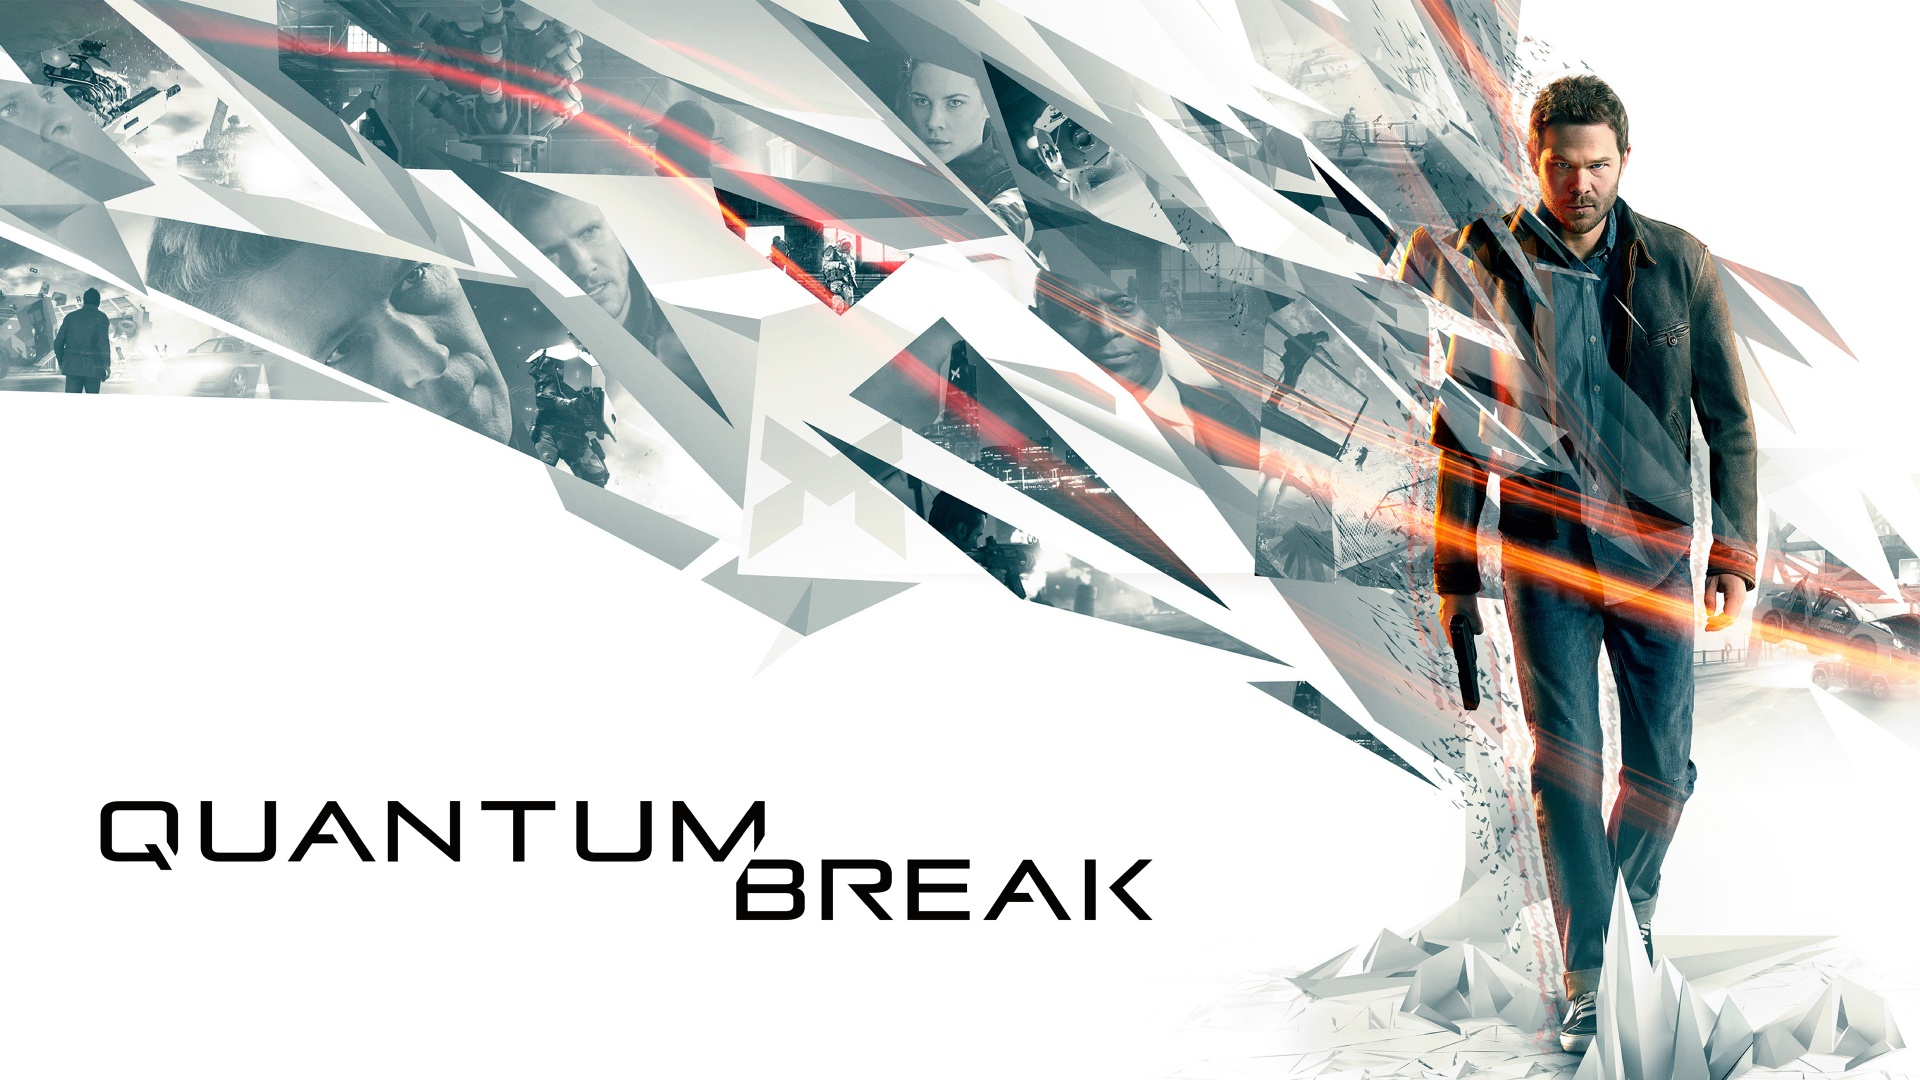 quantum_break_2016_game-1920x1080